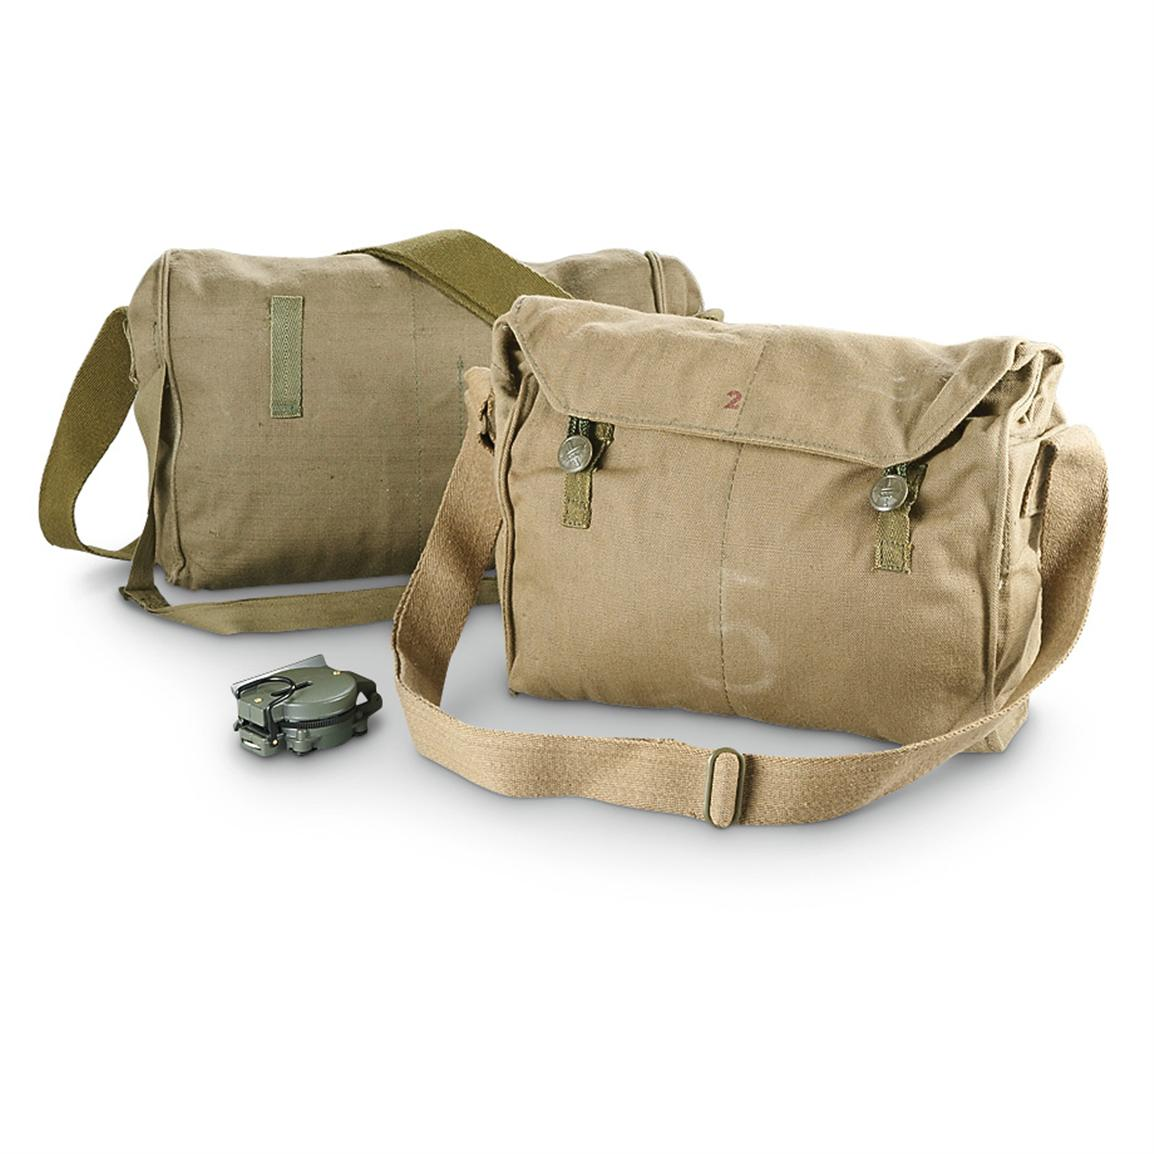 2 Used Czech Military Surplus Shoulder Bags, Olive Drab • 396-cu. in. capacity each